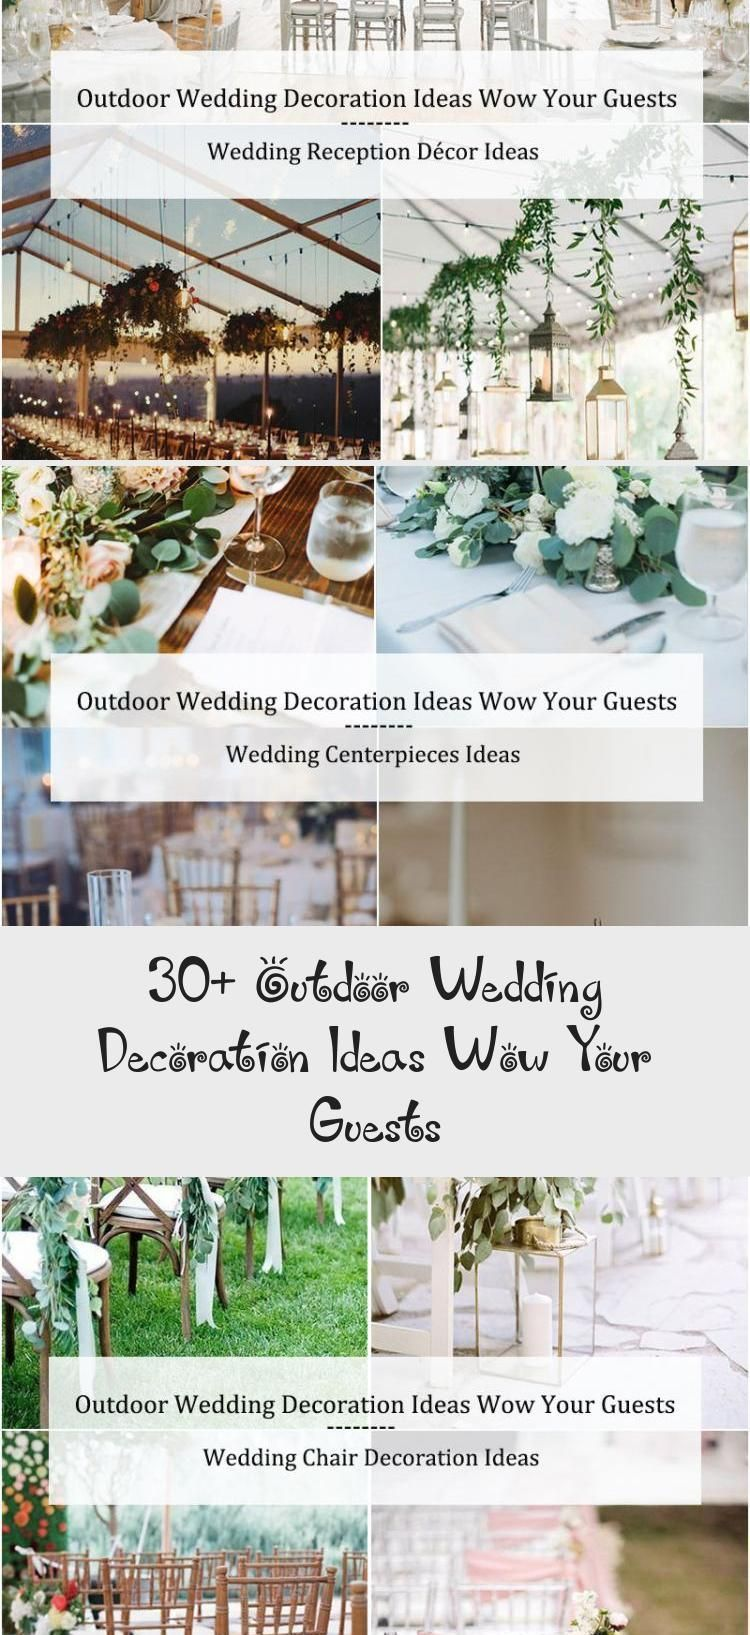 30 Outdoor Wedding Decoration Ideas Wow Your Guests Cheap Wedding Ideas Gard Che In 2020 Outdoor Wedding Decorations Outdoor Wedding Garden Wedding Centerpieces